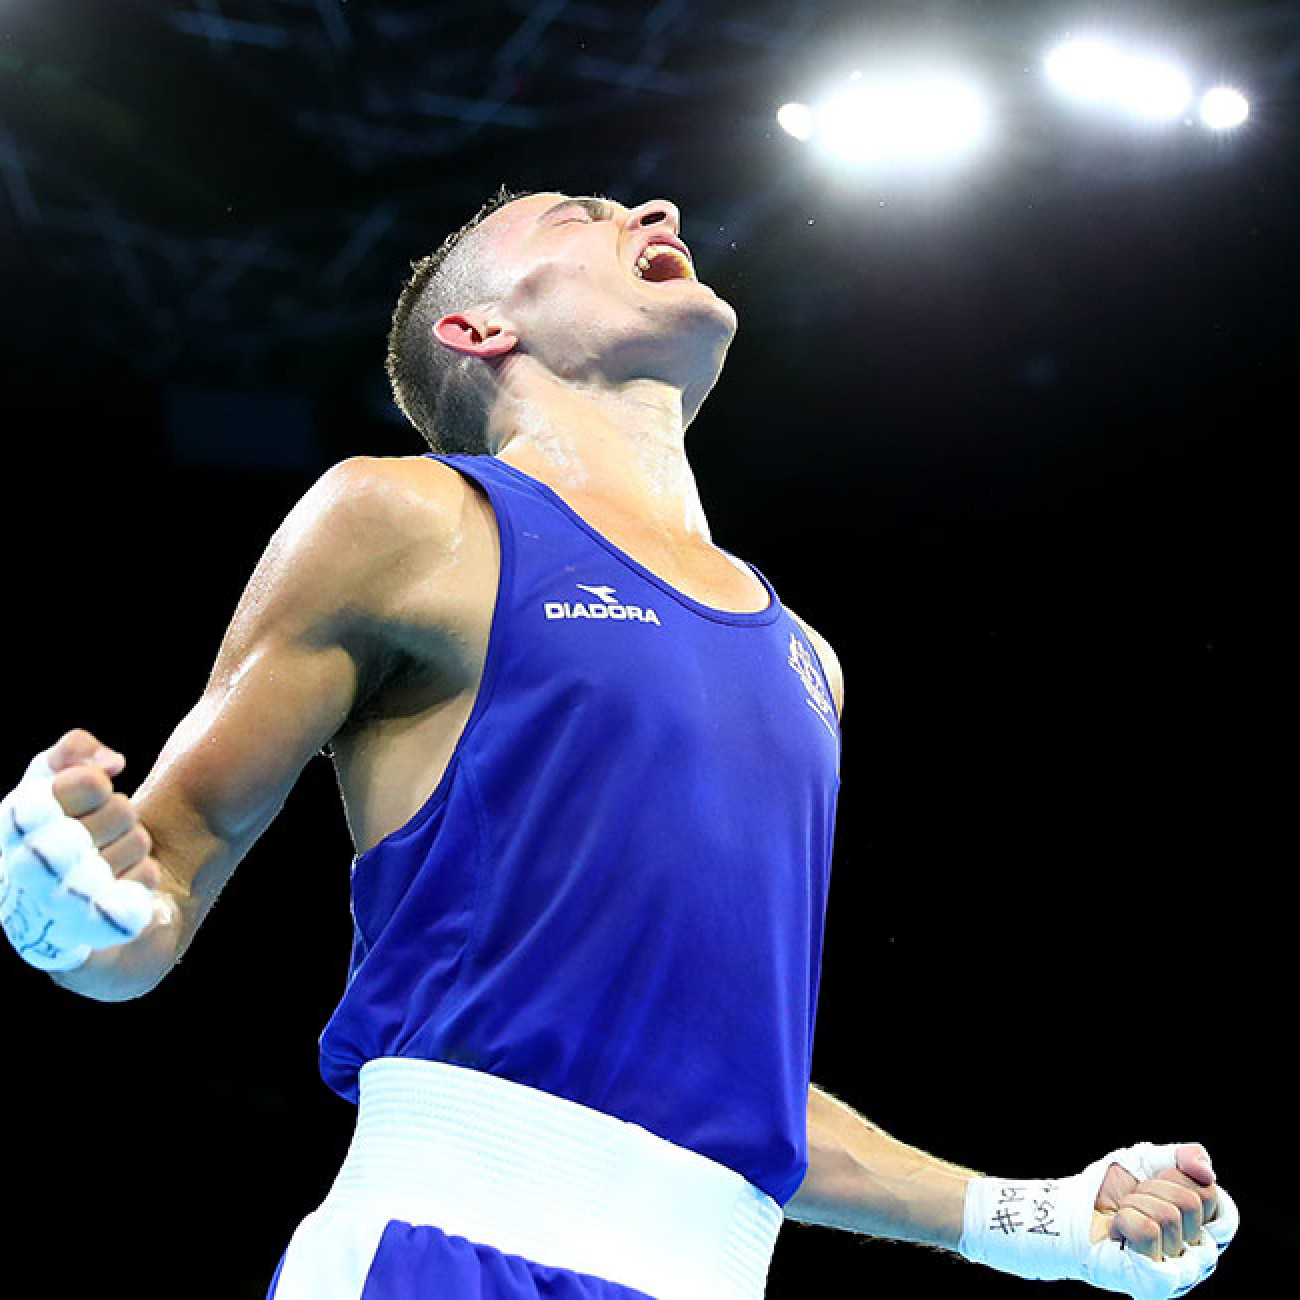 Brendan Irvine of Australia celebrates winning against Gaurav Solanki of India in the men's 52kg final Boxing bout.